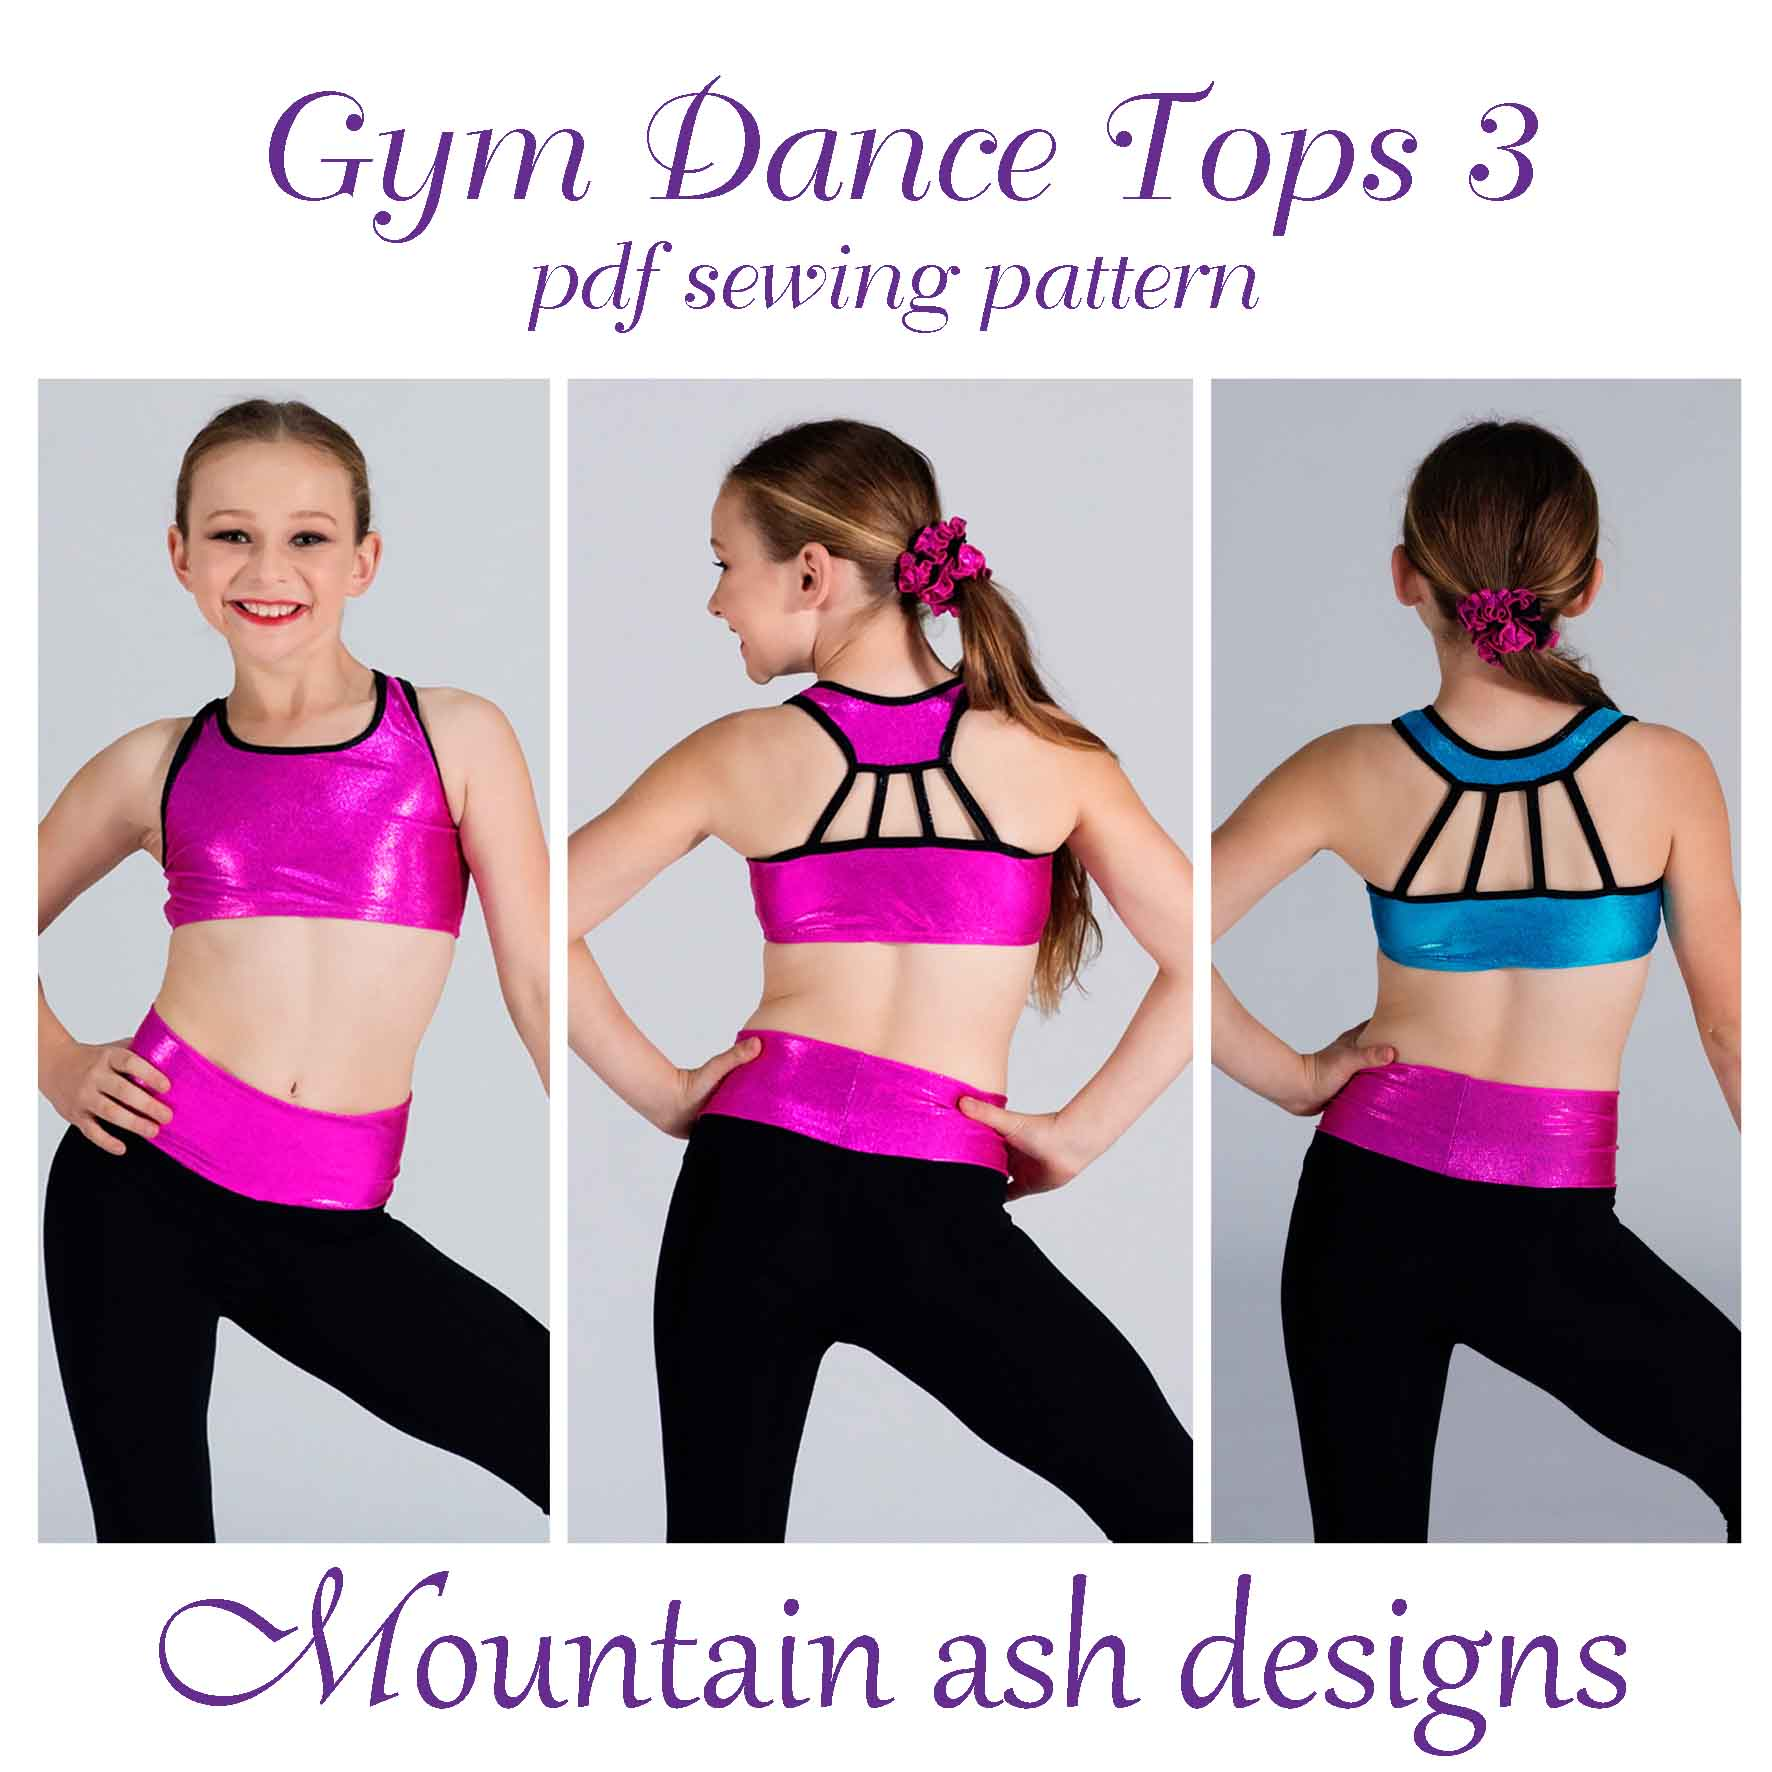 Gymnastics and Dance Tops 3 in Girls Sizes 2-14